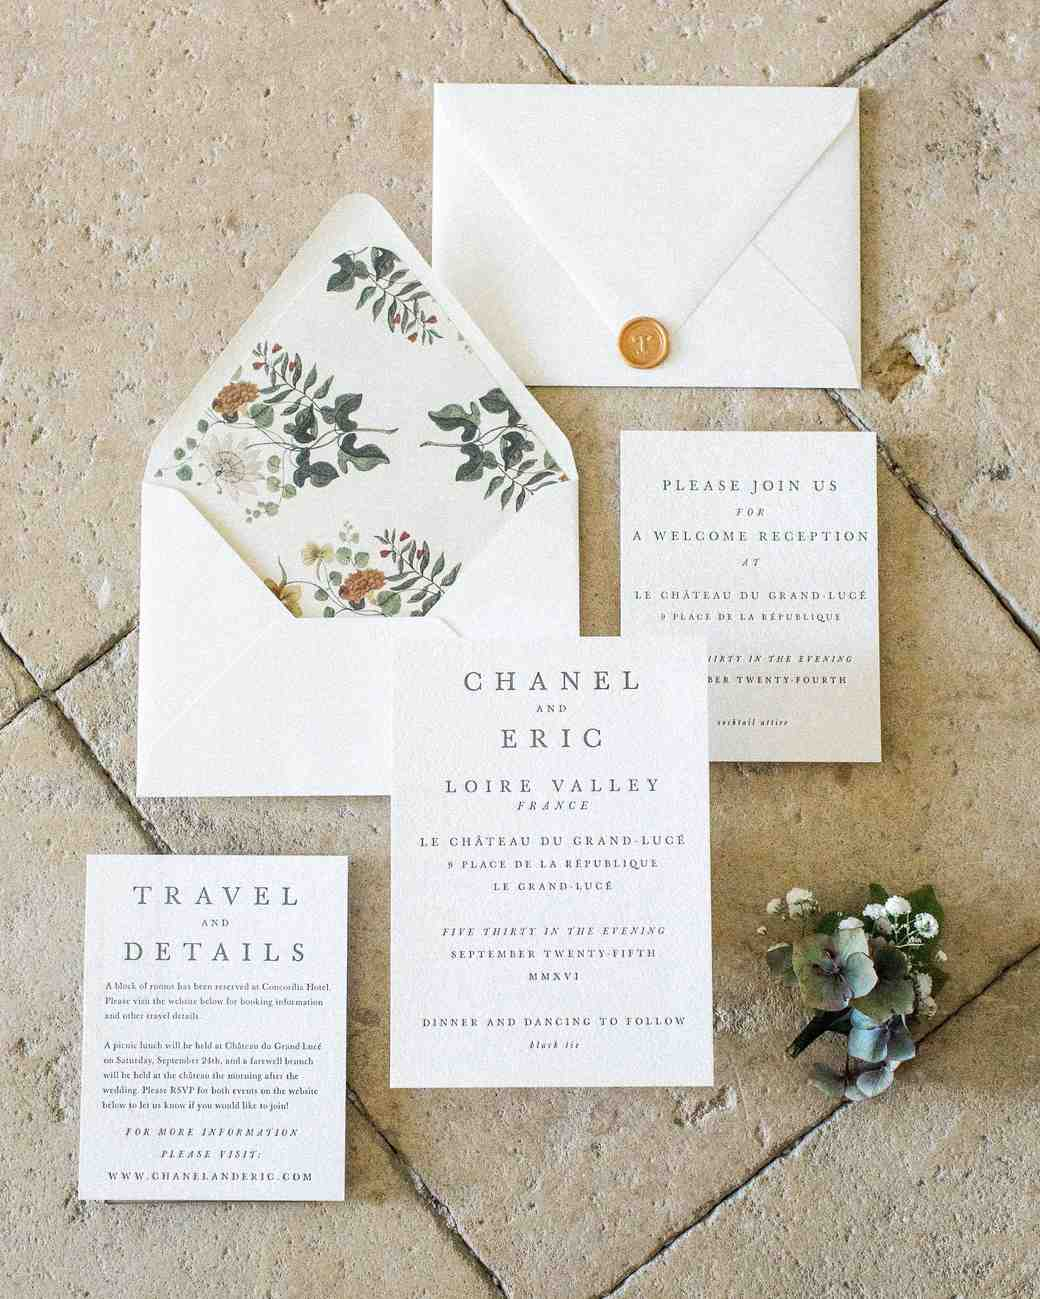 classic invitation customized floral envelope and gold wax seal